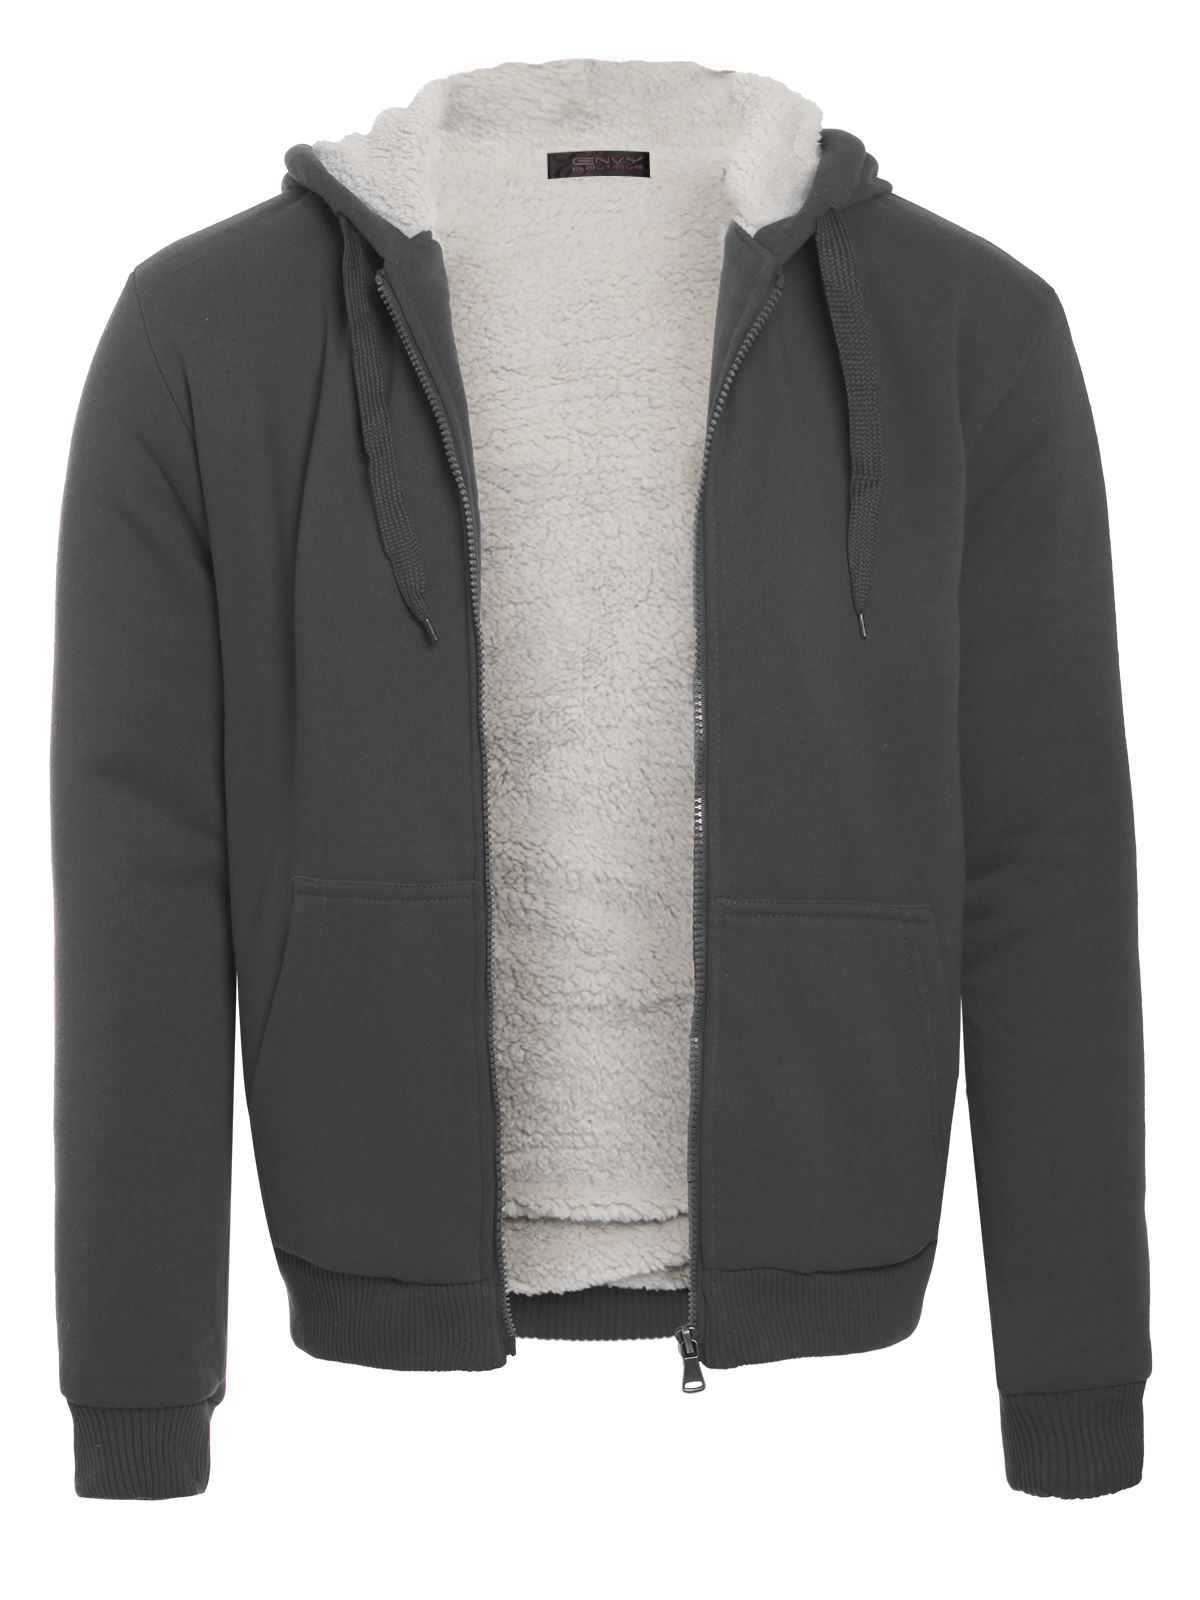 Whether you choose to wear your hoodie with a denim jacket or you want to keep your look sporty, you can't go wrong with throwing a pair of skinny jeans in the mix. Wearing a hoodie under a bomber jacket gives a more contemporary layered look.